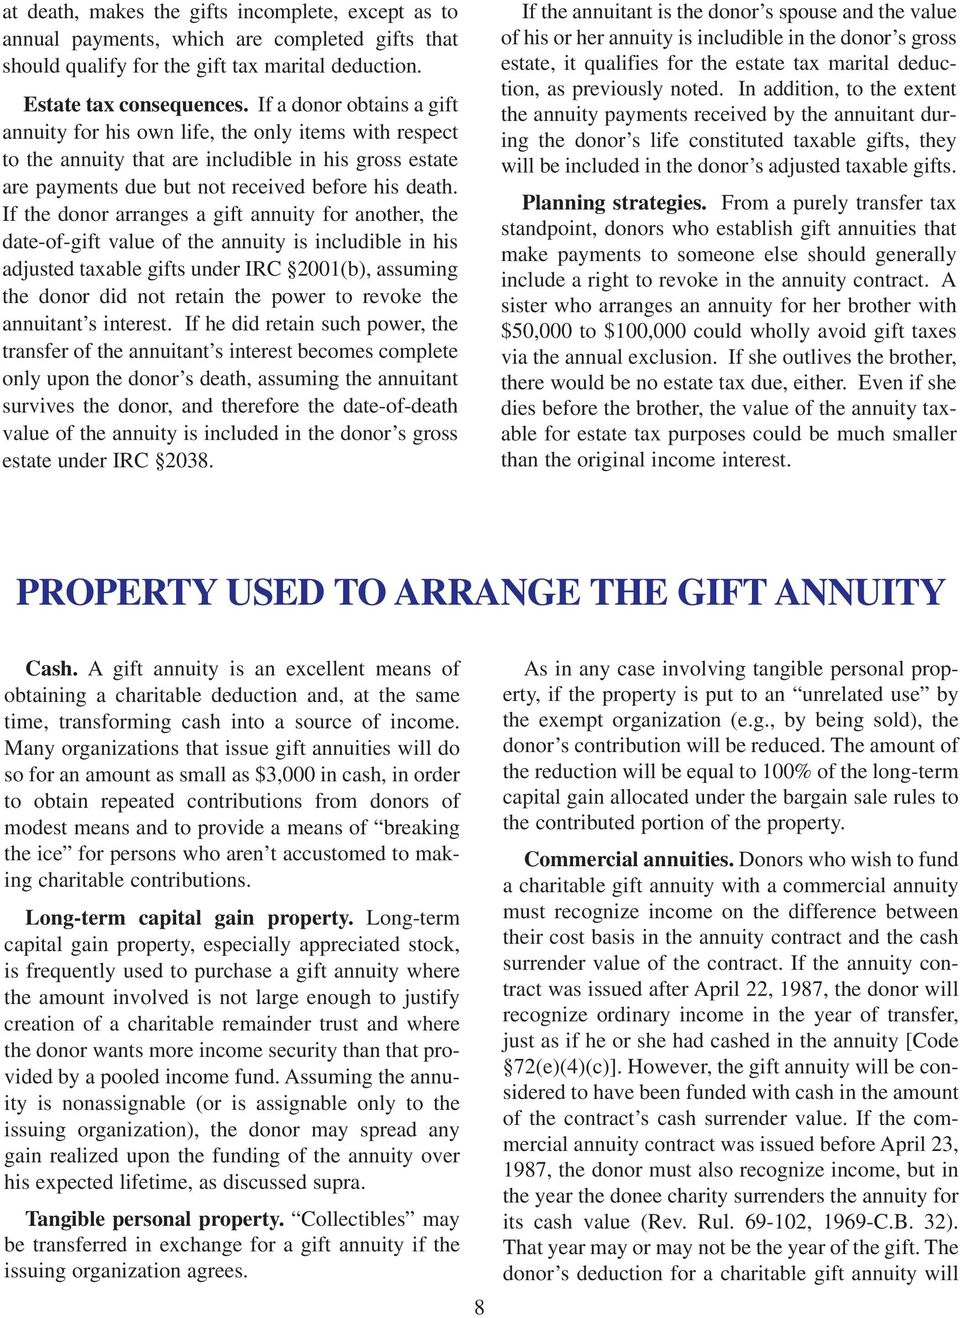 If the donor arranges a gift annuity for another, the date-of-gift value of the annuity is includible in his adjusted taxable gifts under IRC 2001(b), assuming the donor did not retain the power to